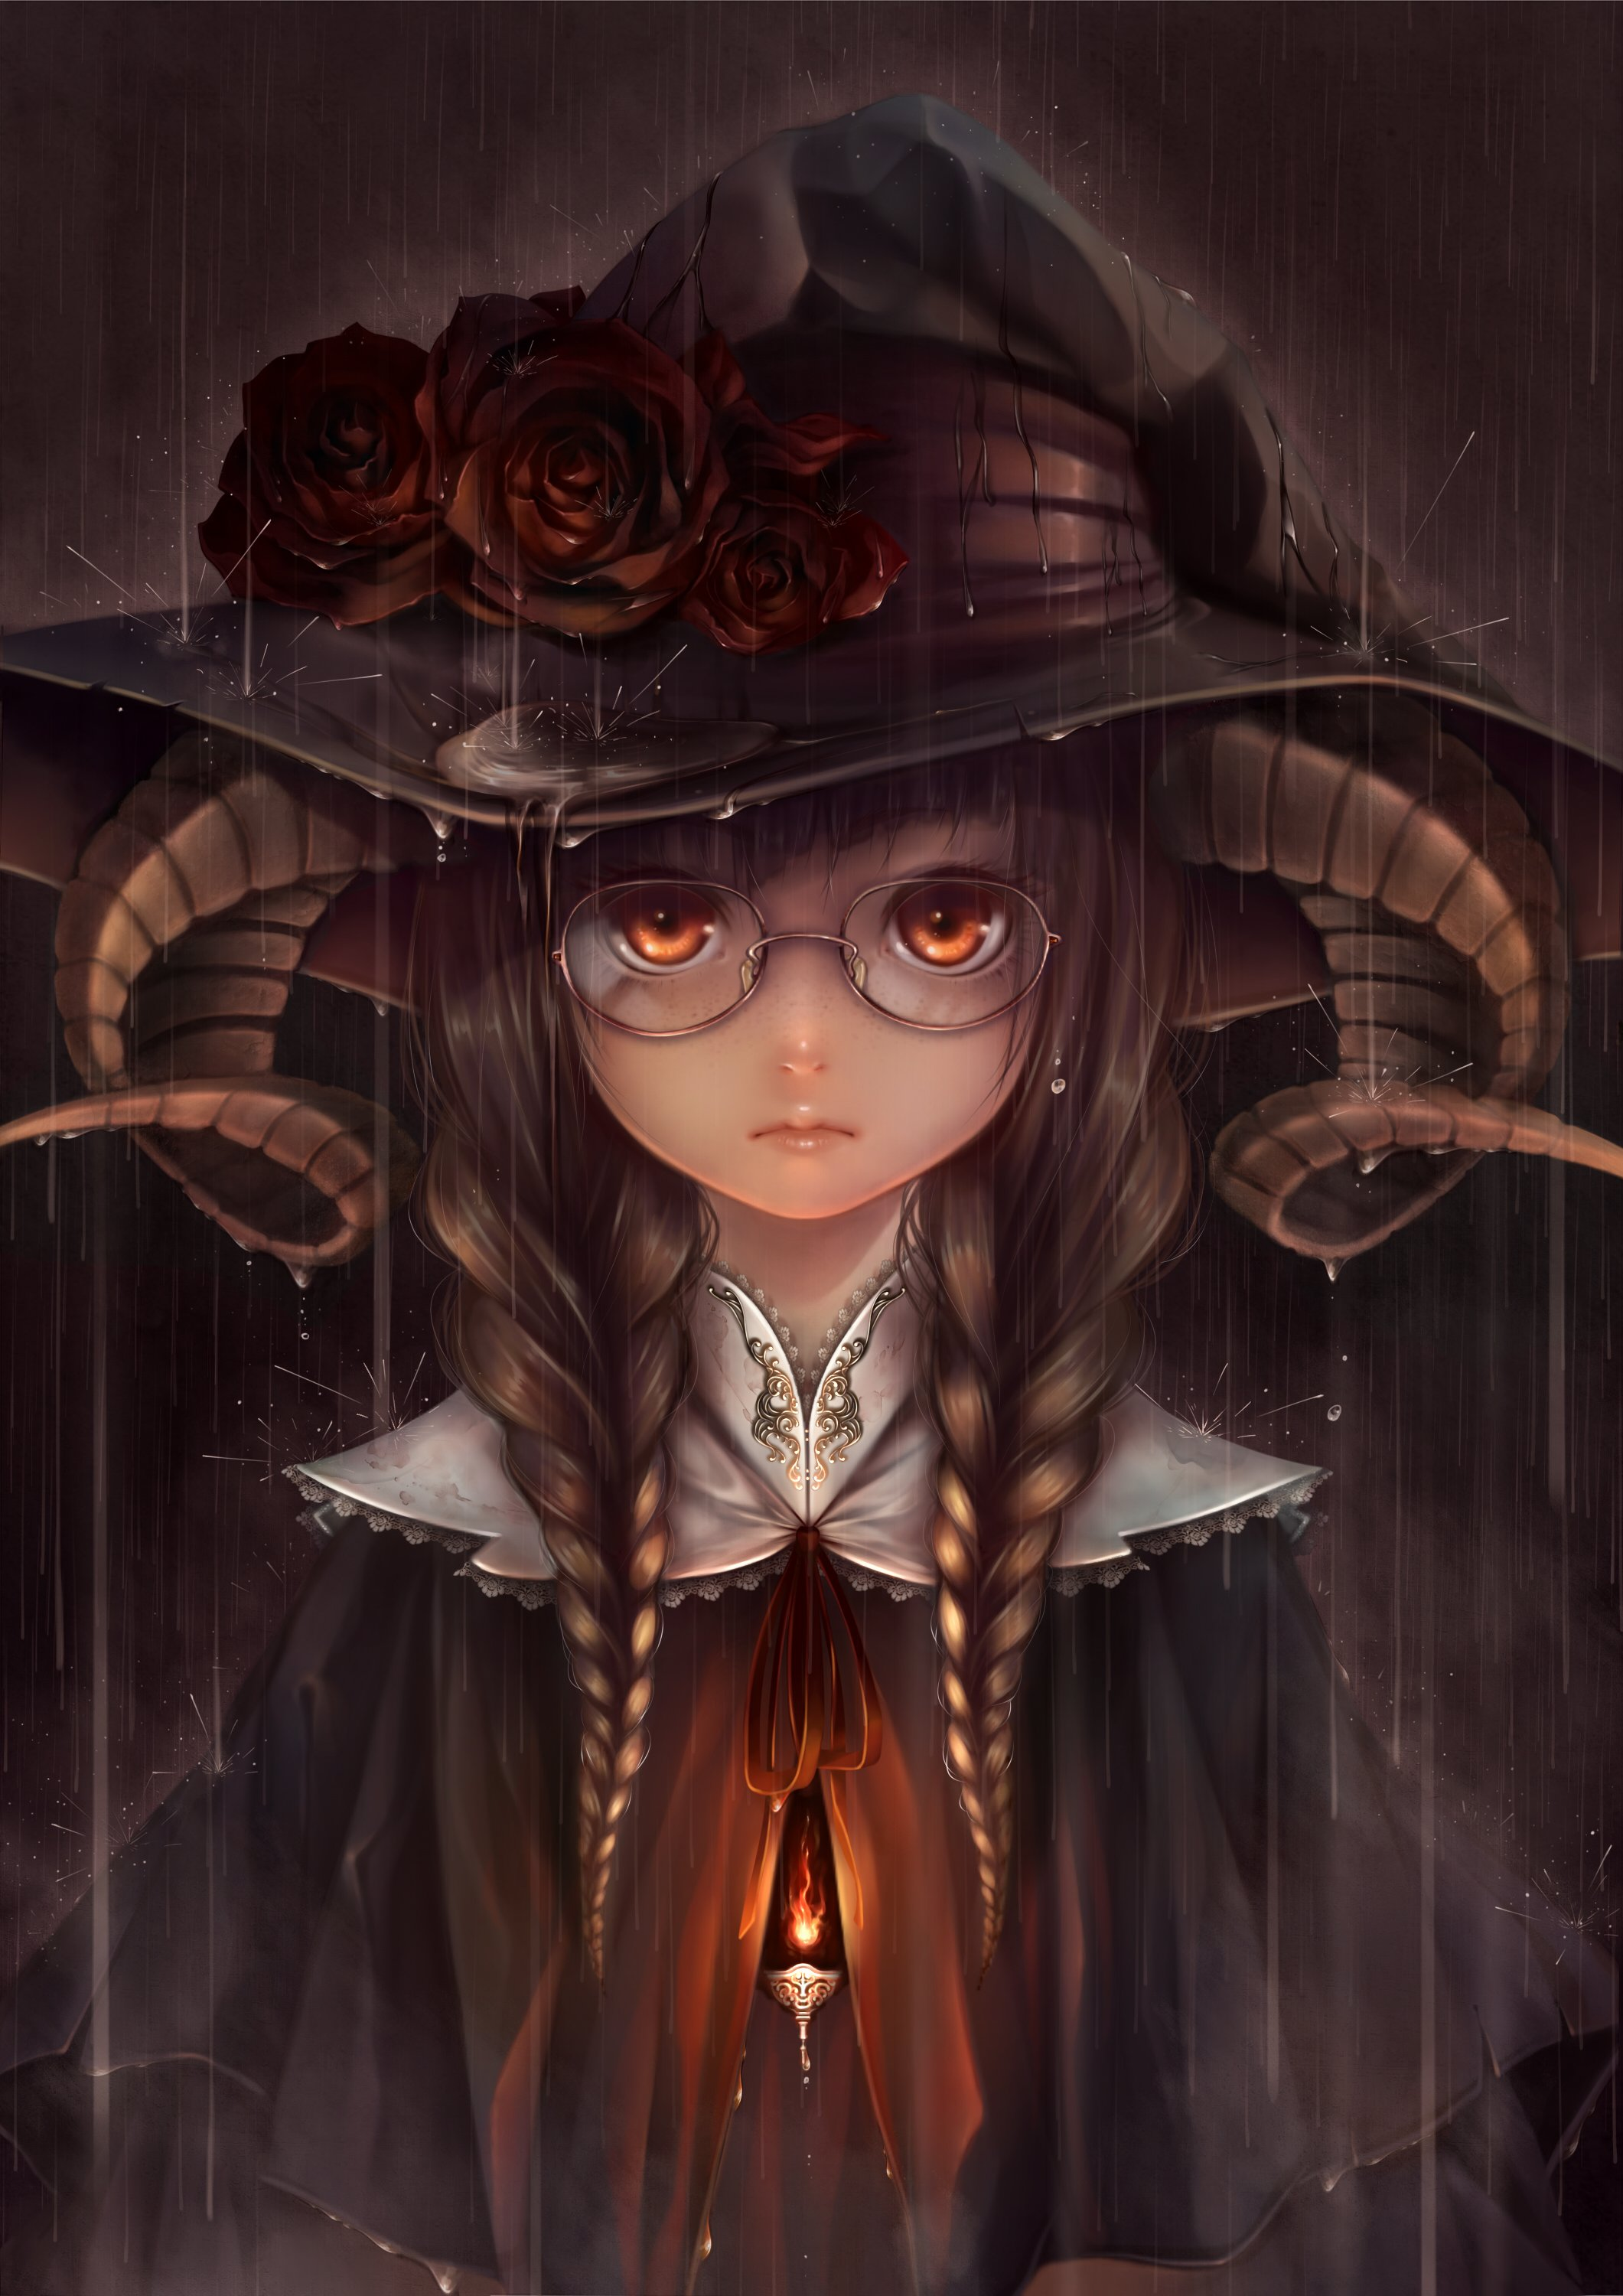 Anime girl braids brown hair fire flower freckles glasses hat horns orange eyes rain twin tails wallpaper 2121x3000 848585 wallpaperup